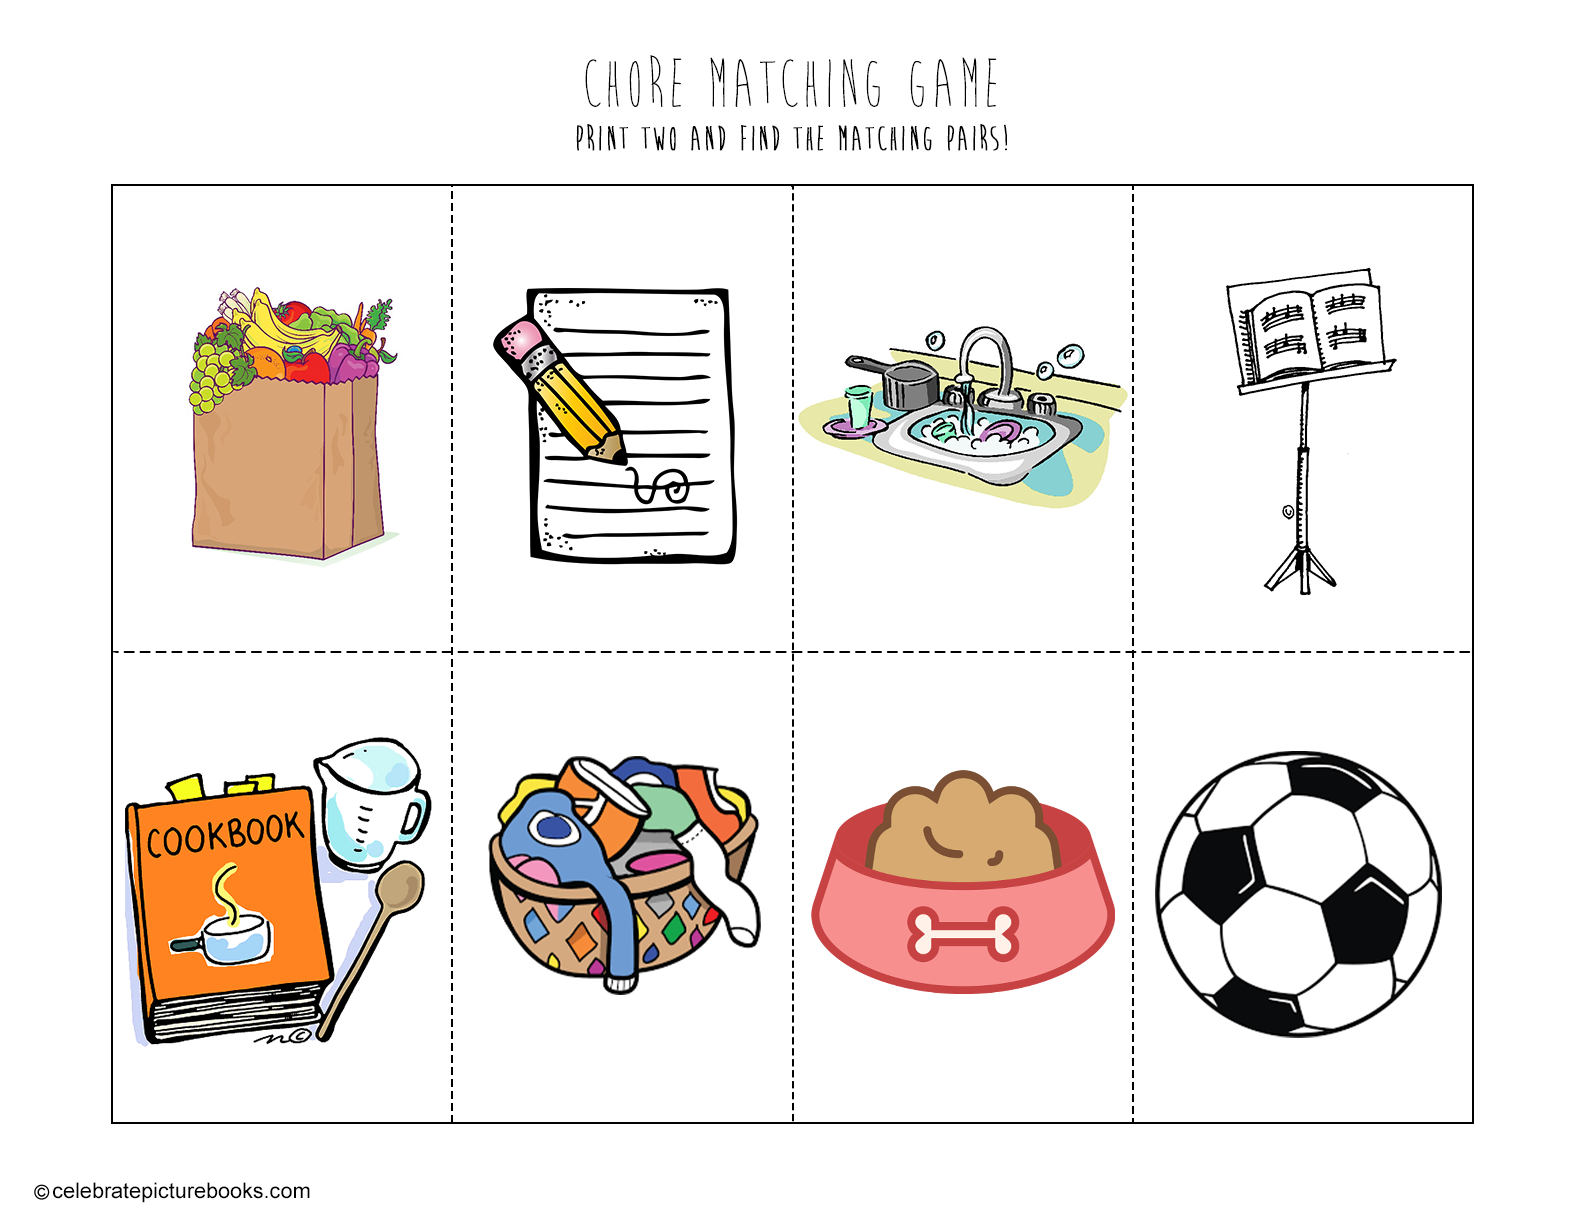 celebrate-picture-books-picture-book-review-chore-matching-card-game